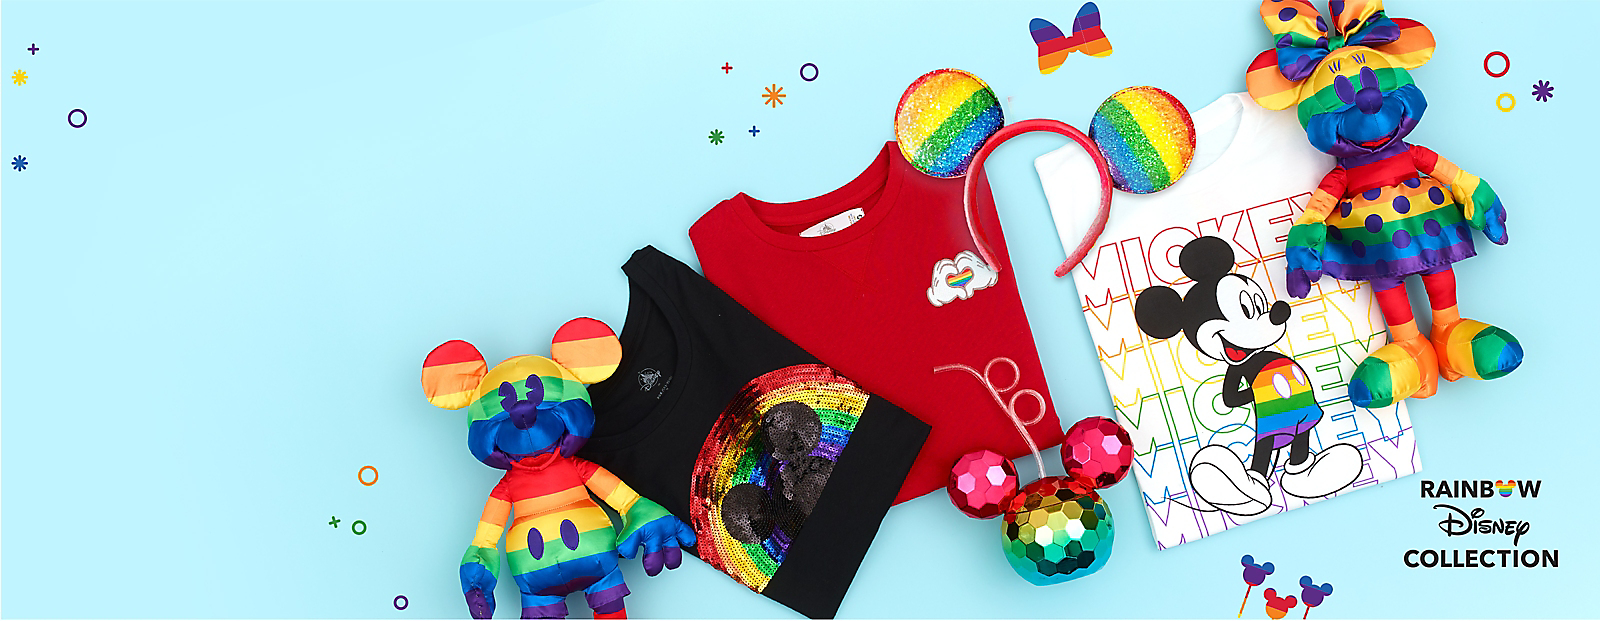 Rainbow colored Mickey plush, t-shirts, ear headband, cup and Minnie plush